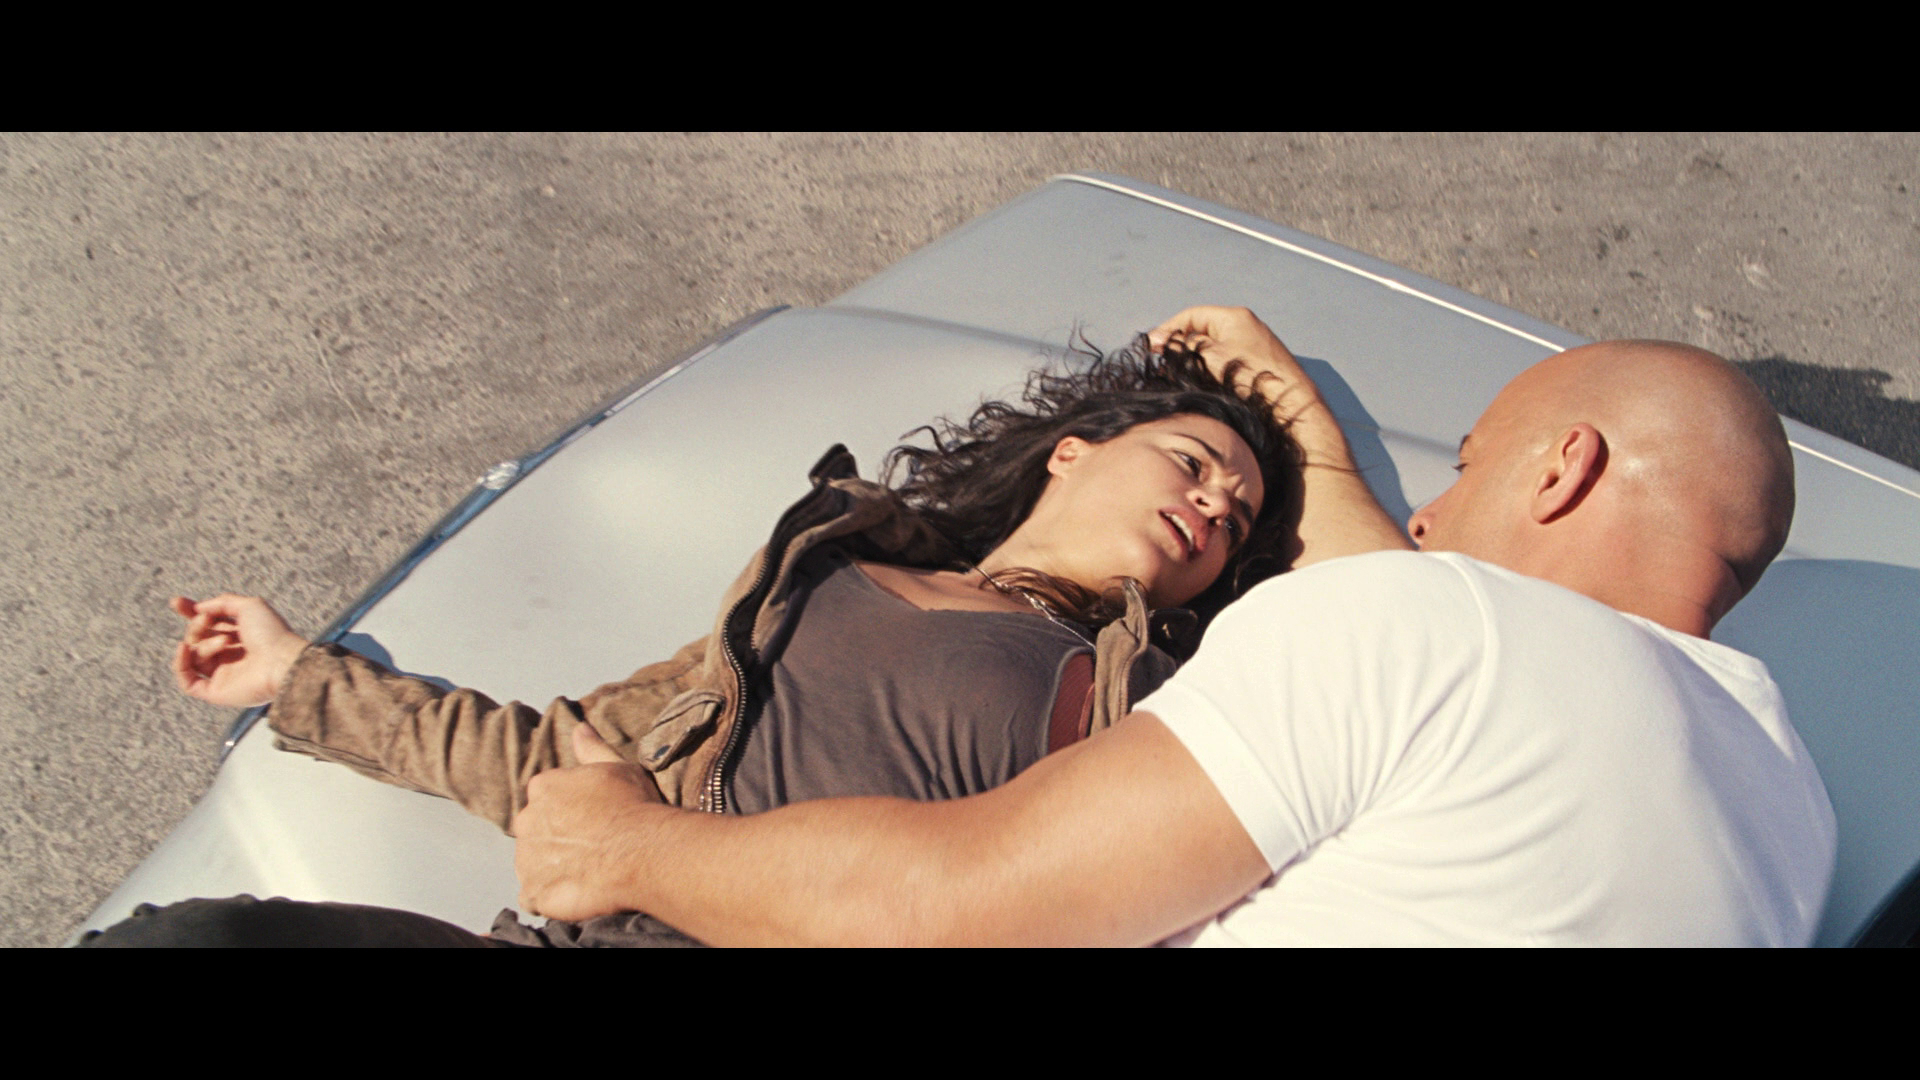 Dom saves Letty amidst a fight causing her to re-join his team, although she doesn't remember him.